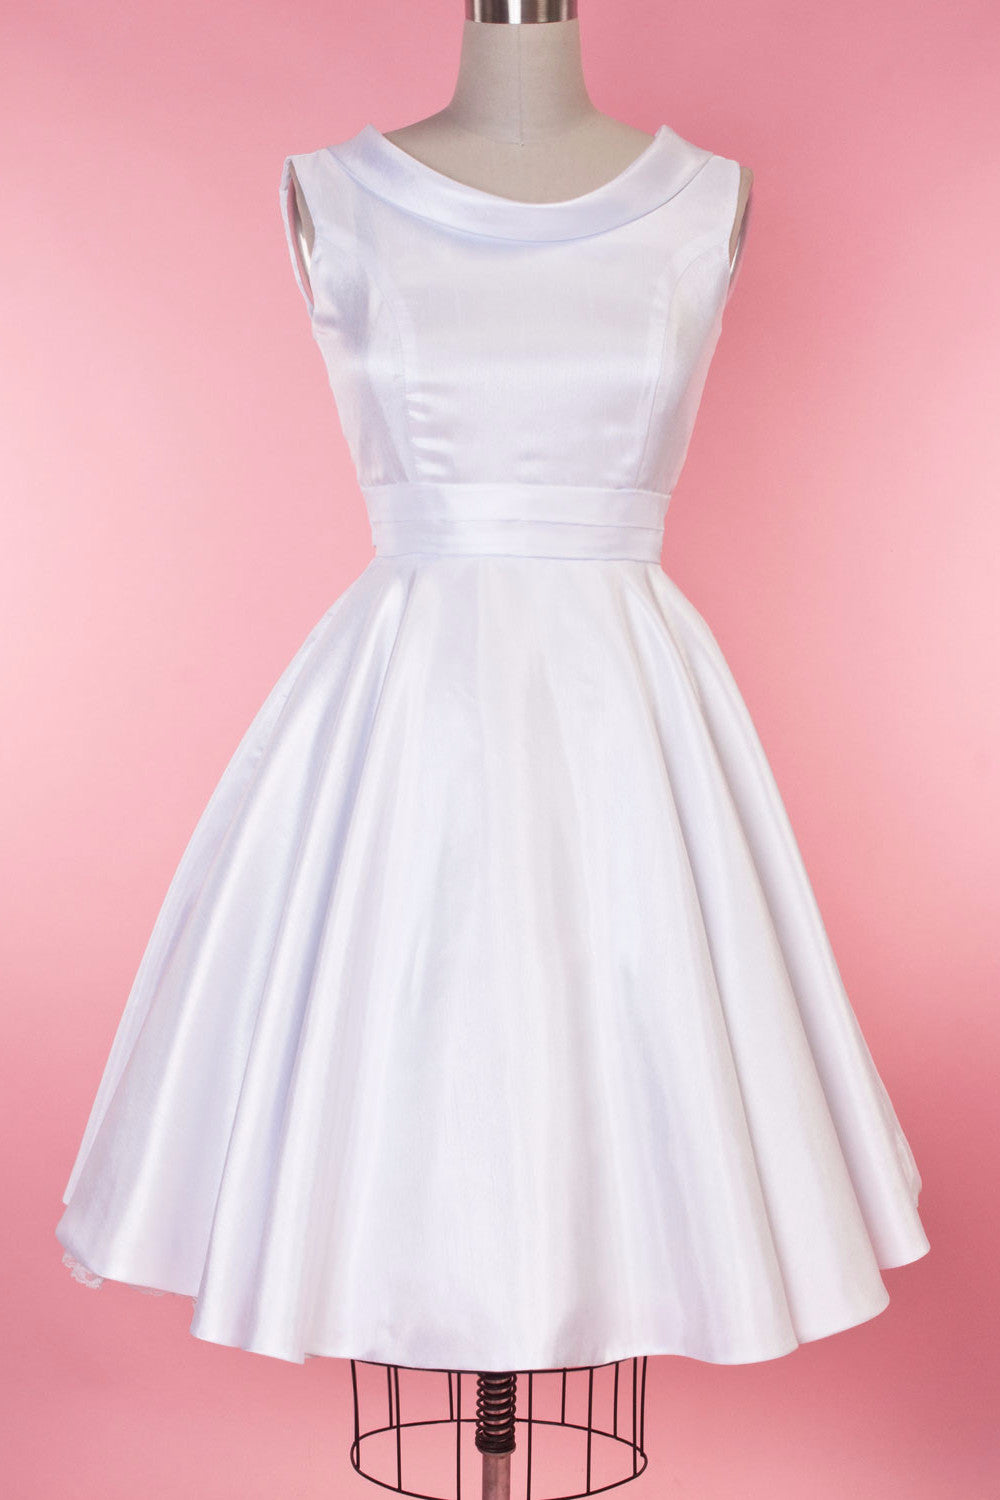 BP Suzette Dress - White Shantung - Heart of Haute  - 4